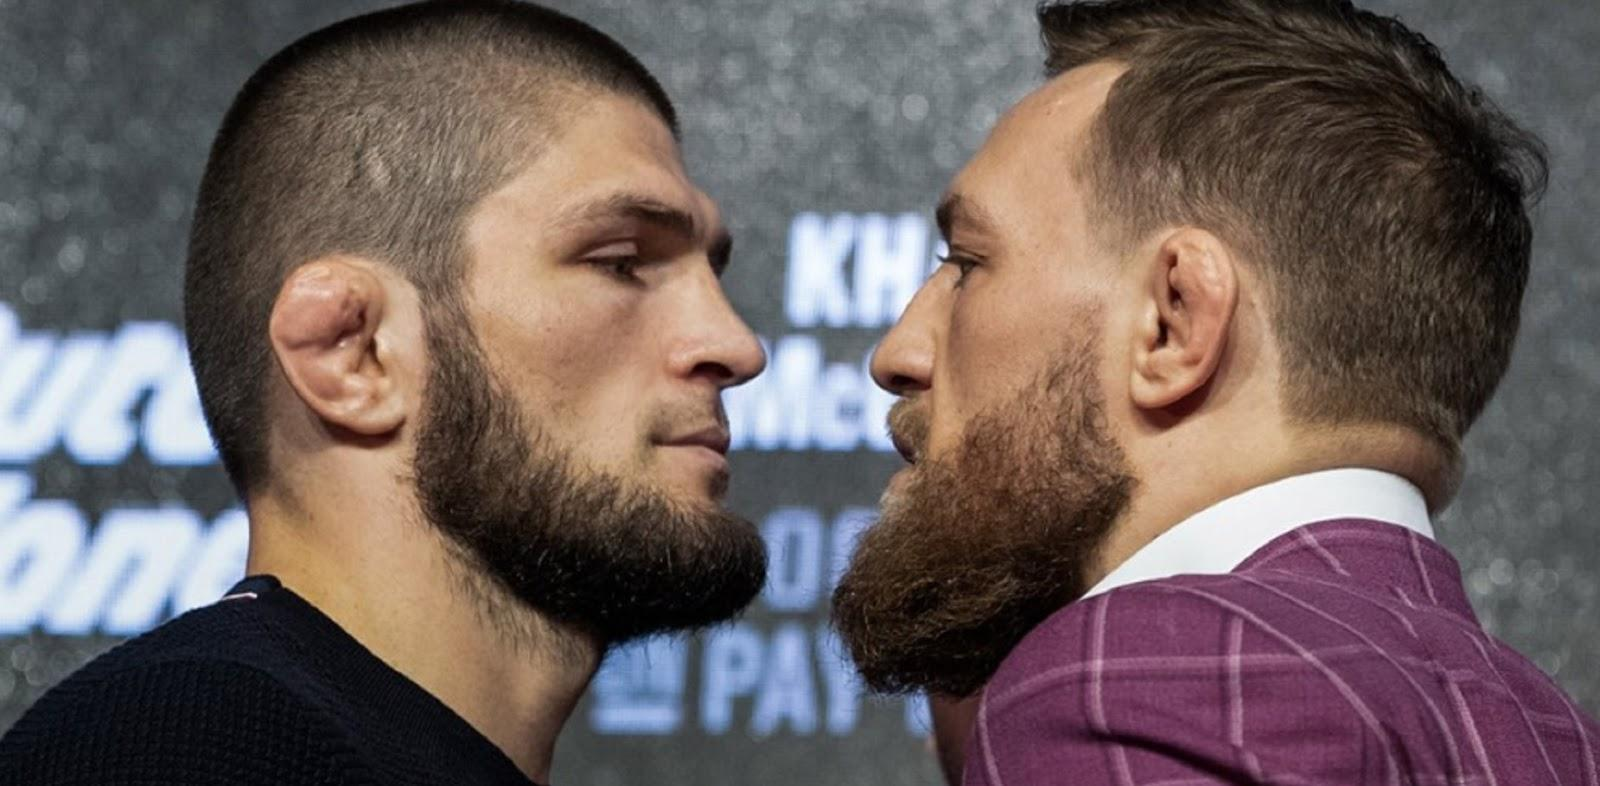 Image result for bearded ufc fighters face to face